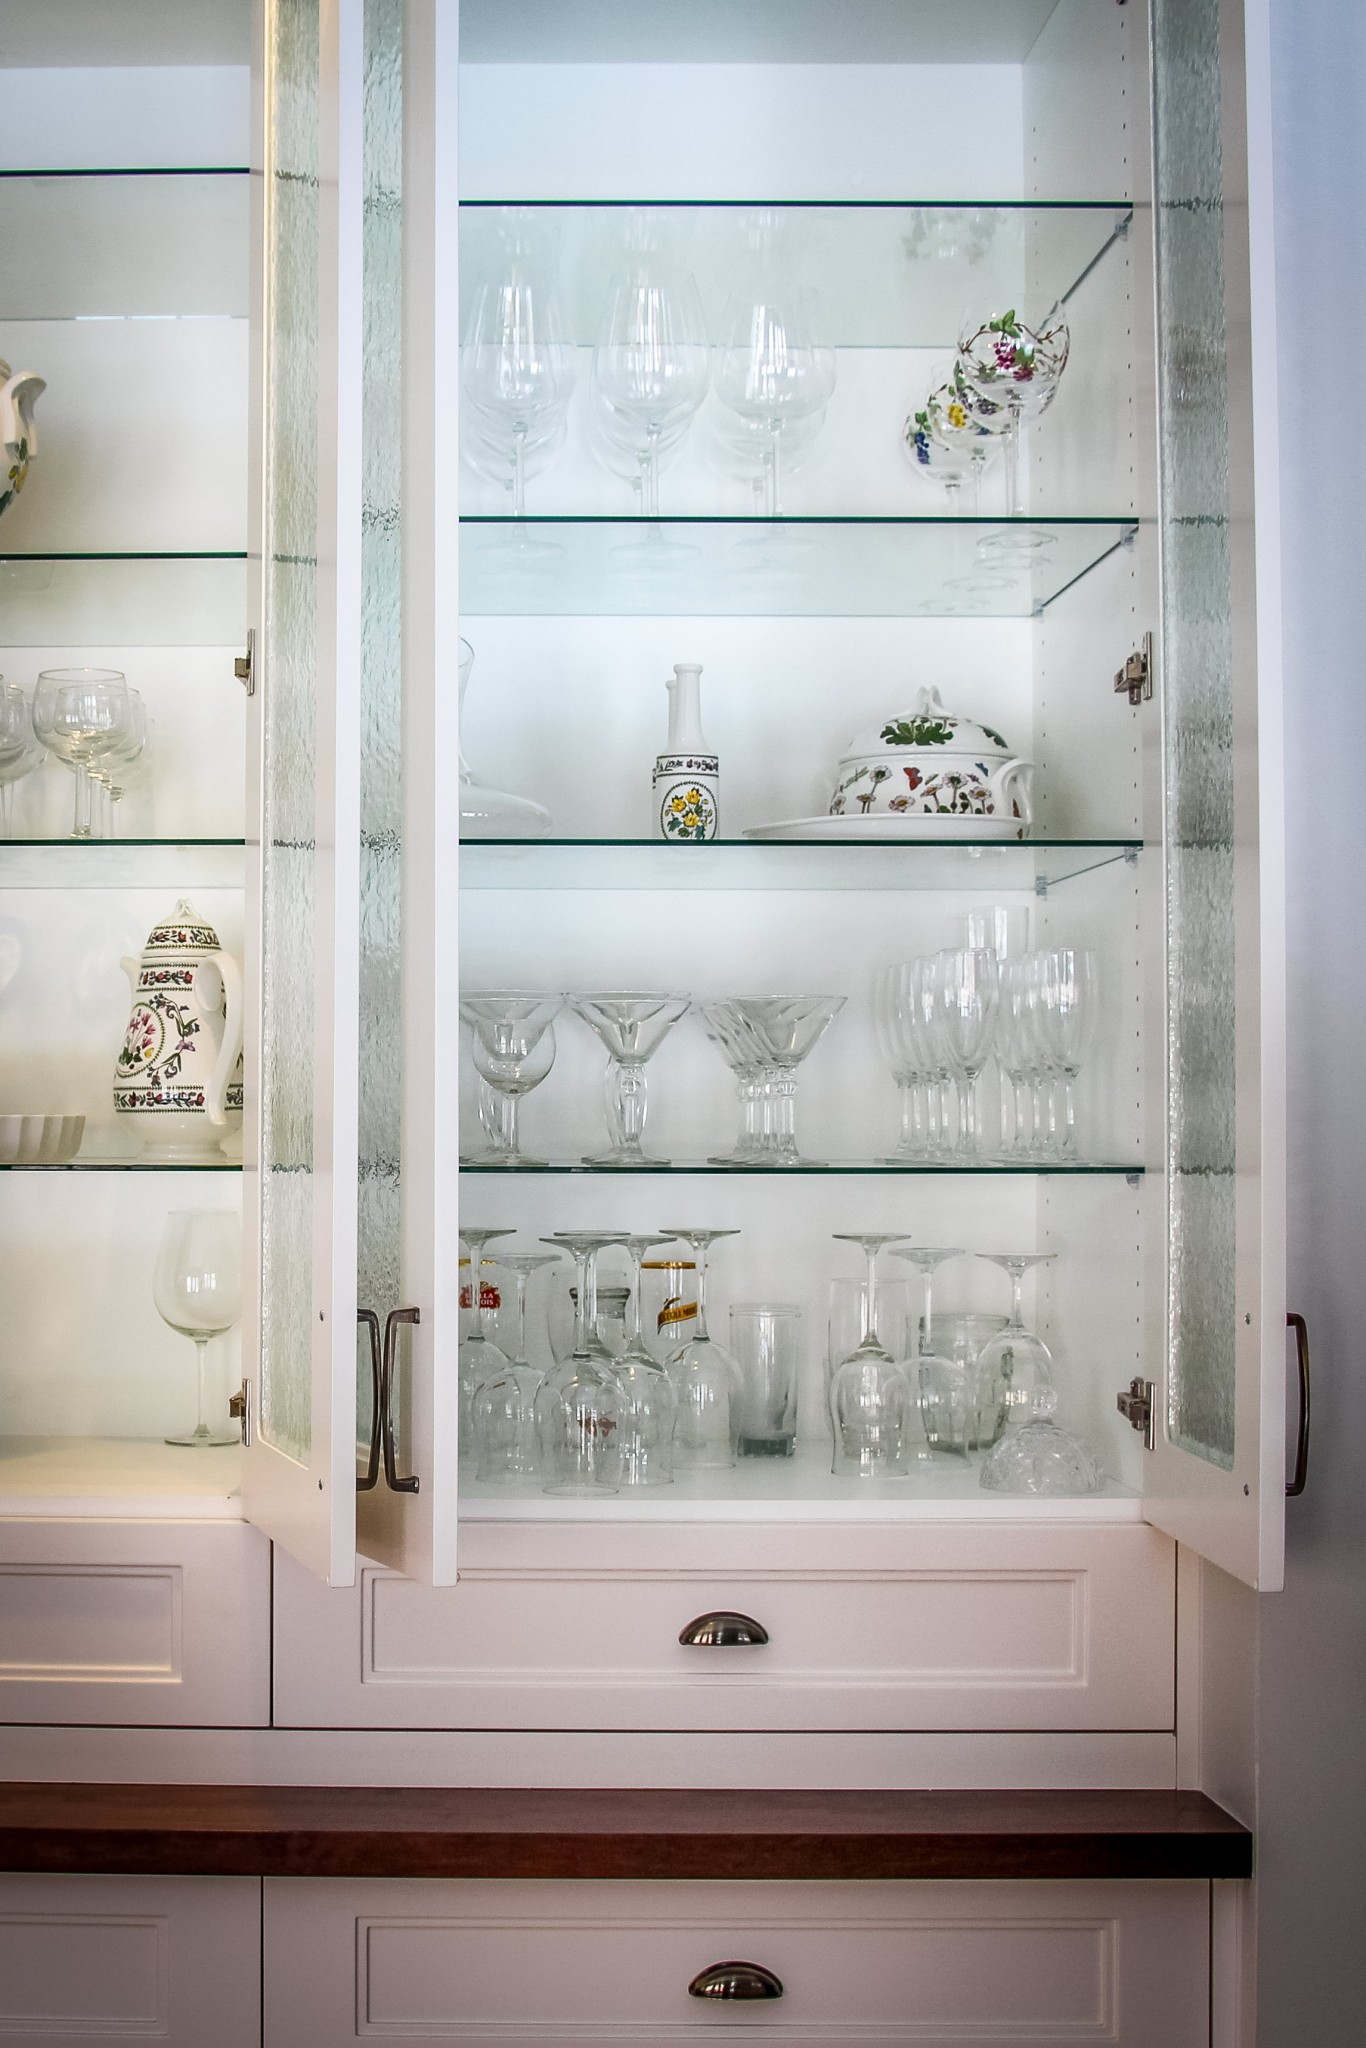 Fine glassware displayed on glass shelves within a builtin china cabinet.